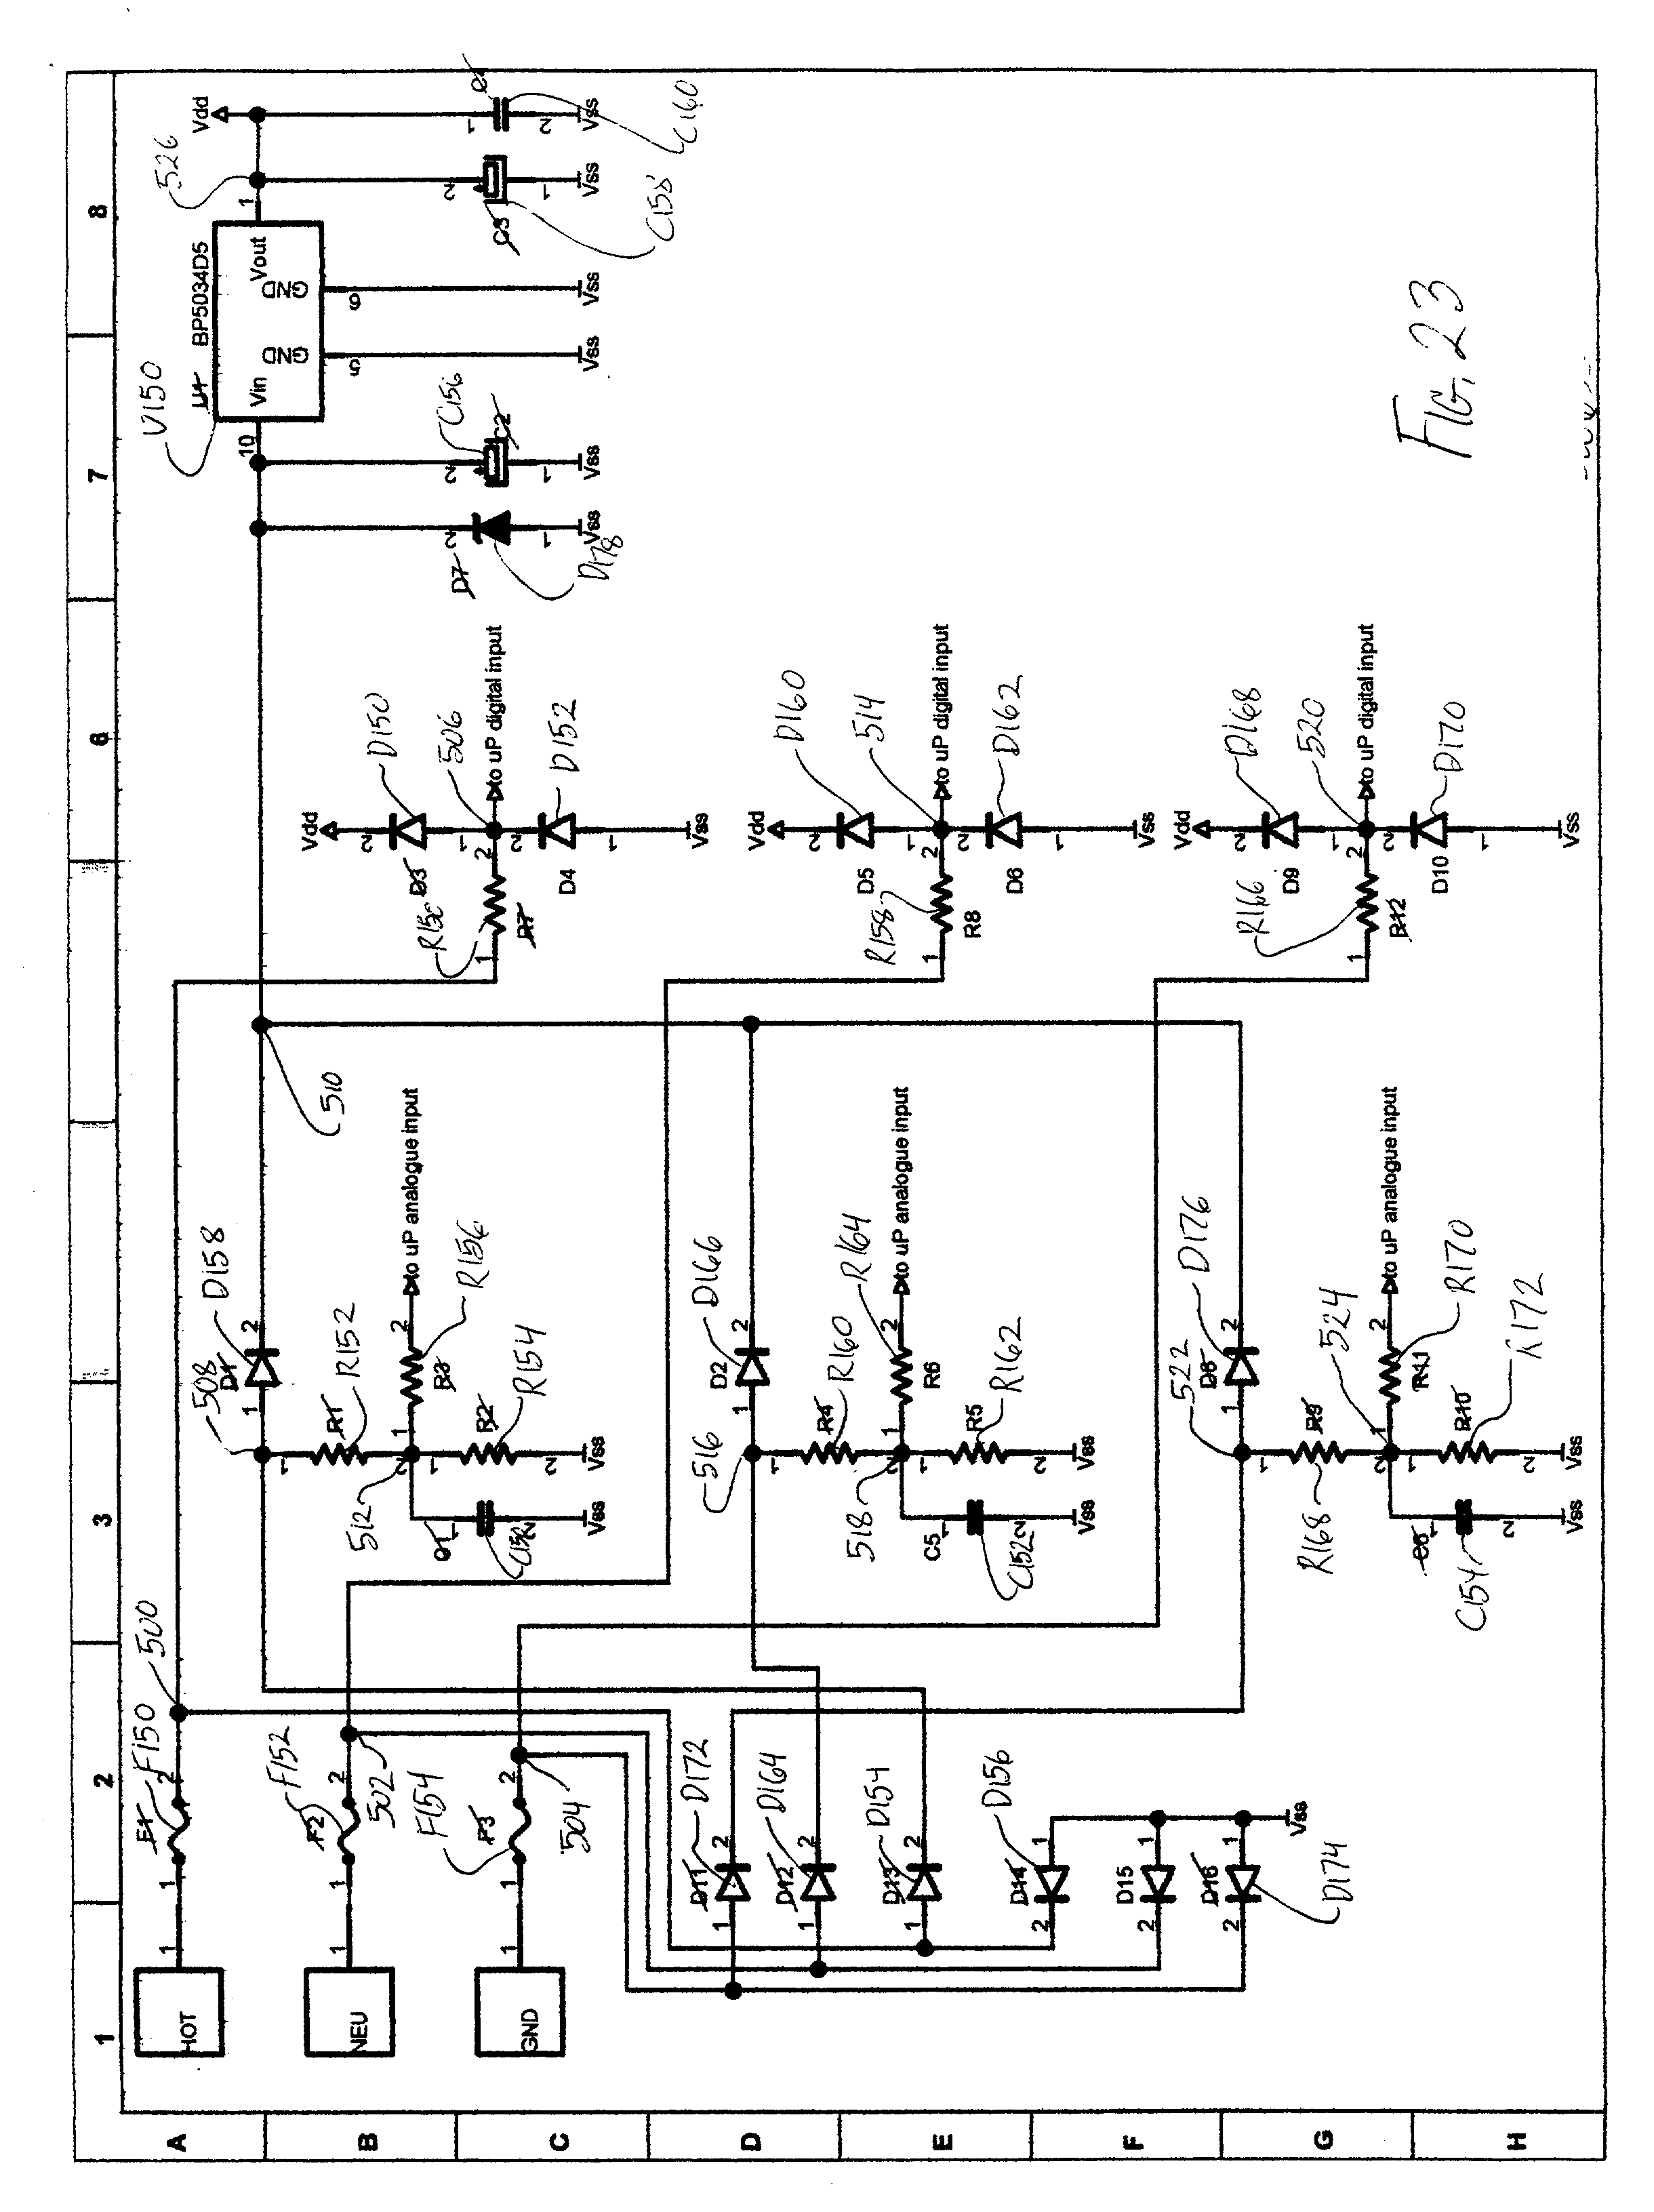 Ground Fault Circuit Interrupter Function Manual Guide Wiring Pluggfciground Interrupterplug Patent Us20020063565 Arc Current Testing Device Google Patents Breaker Plug